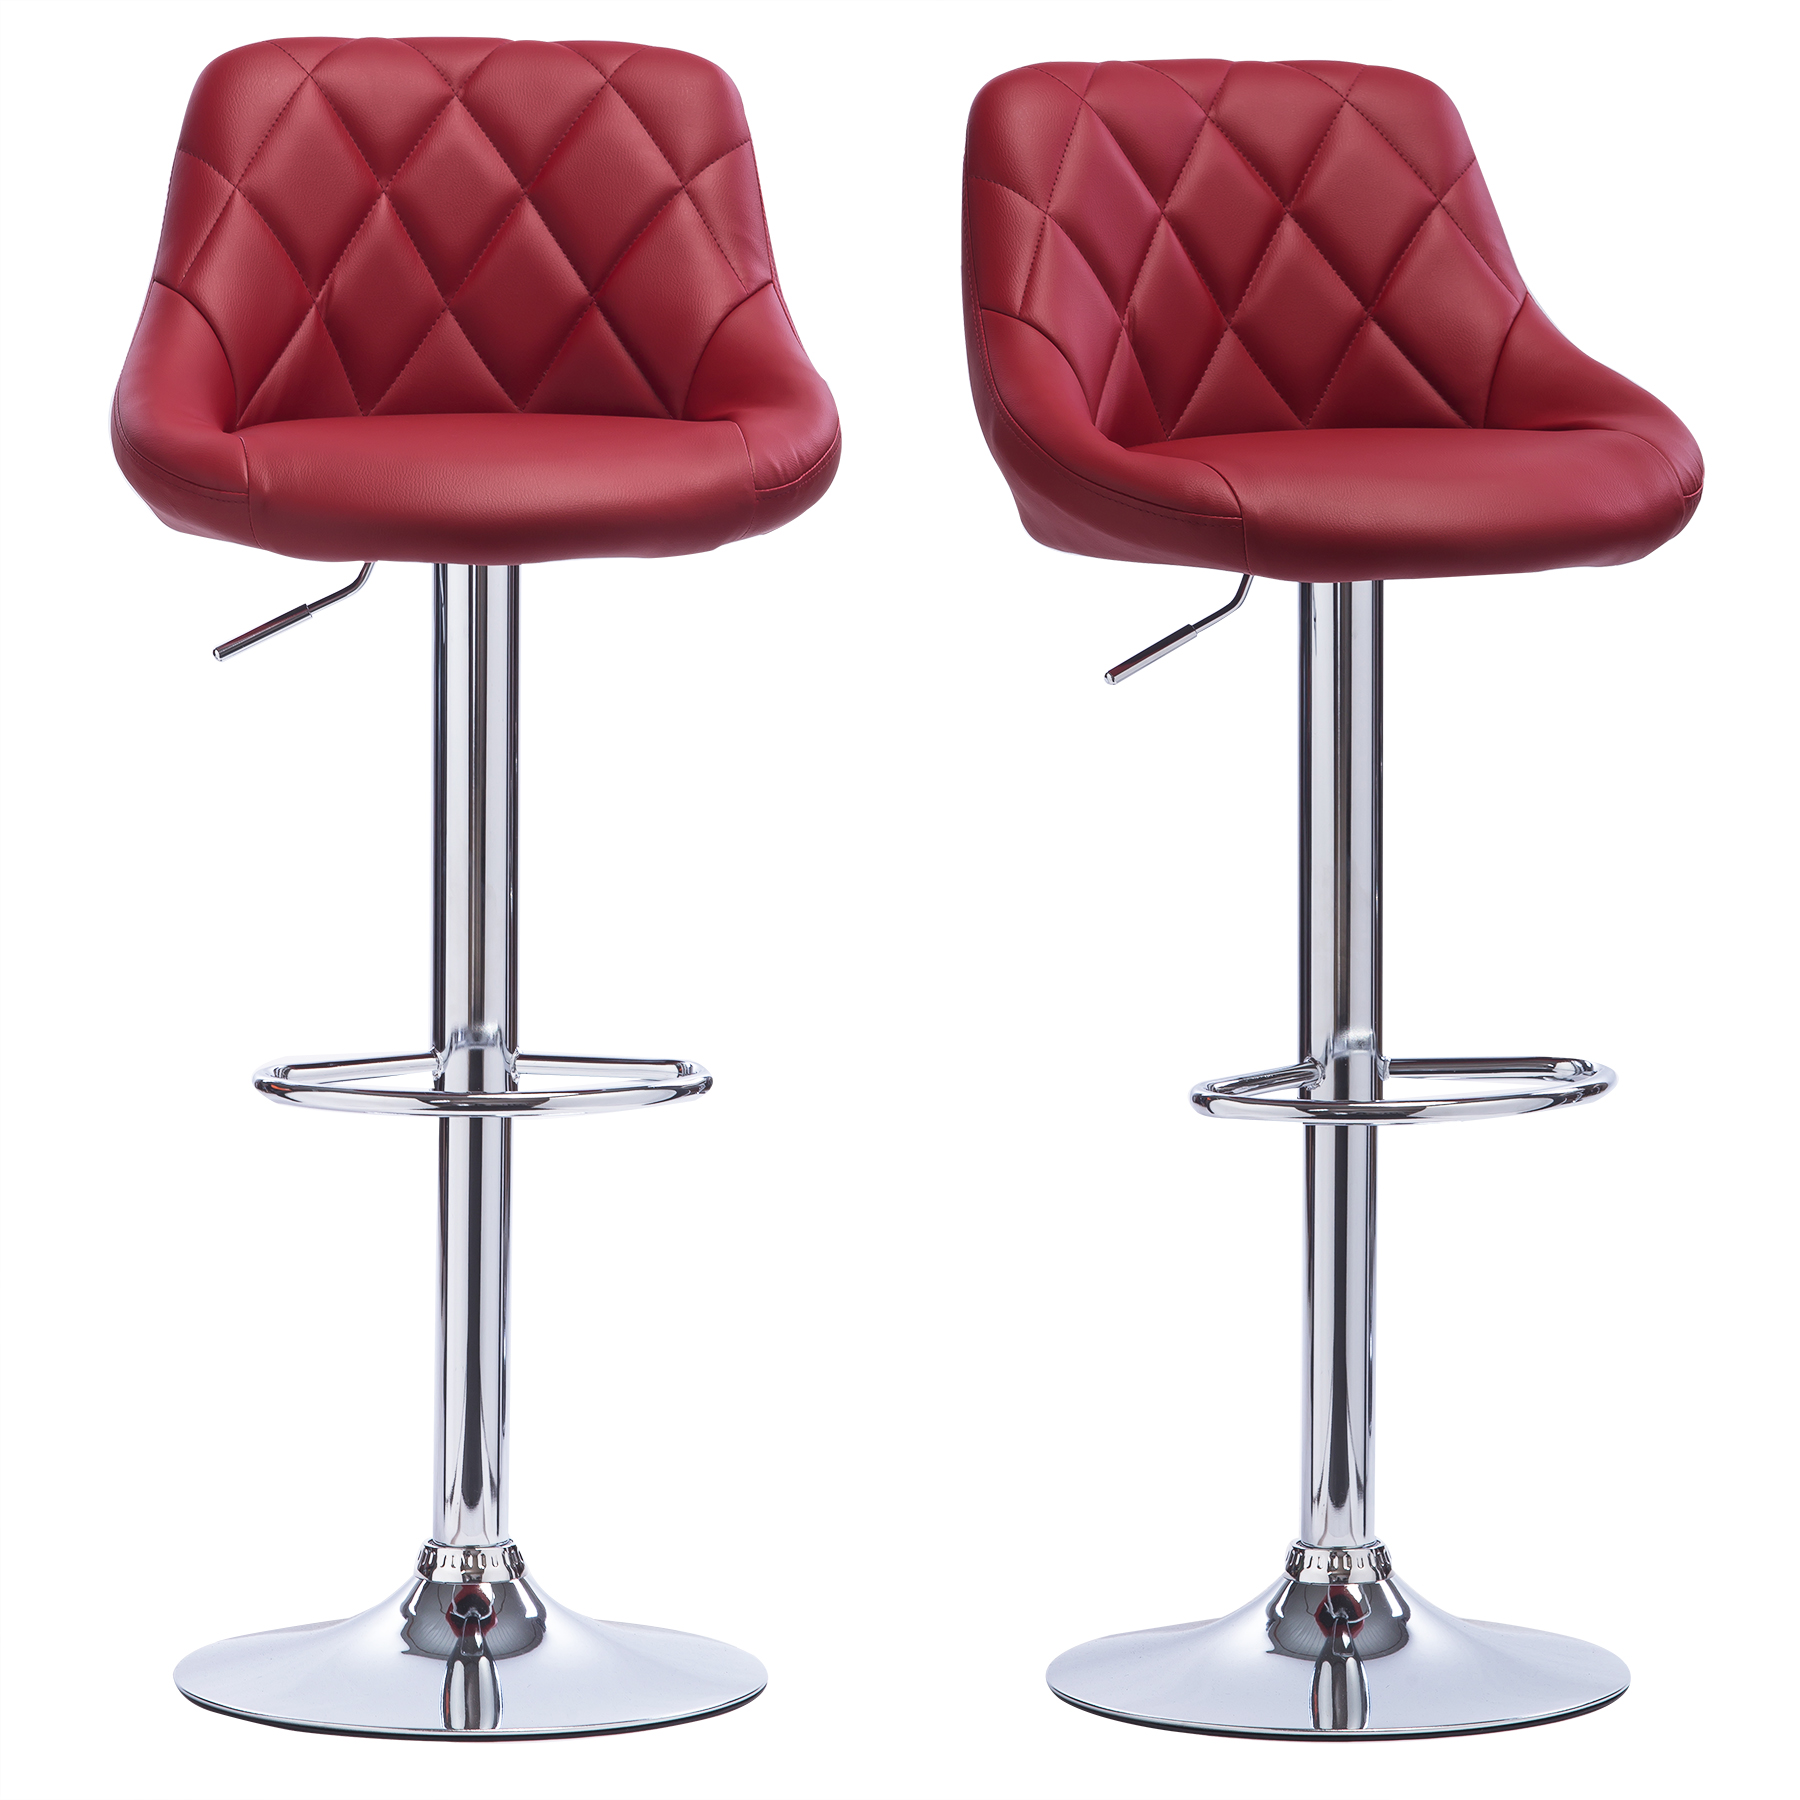 Bar Stools set of 21 Faux Leather Adjust Breakfast Chair  : BH23bd 20 from www.ebay.co.uk size 1800 x 1800 jpeg 888kB